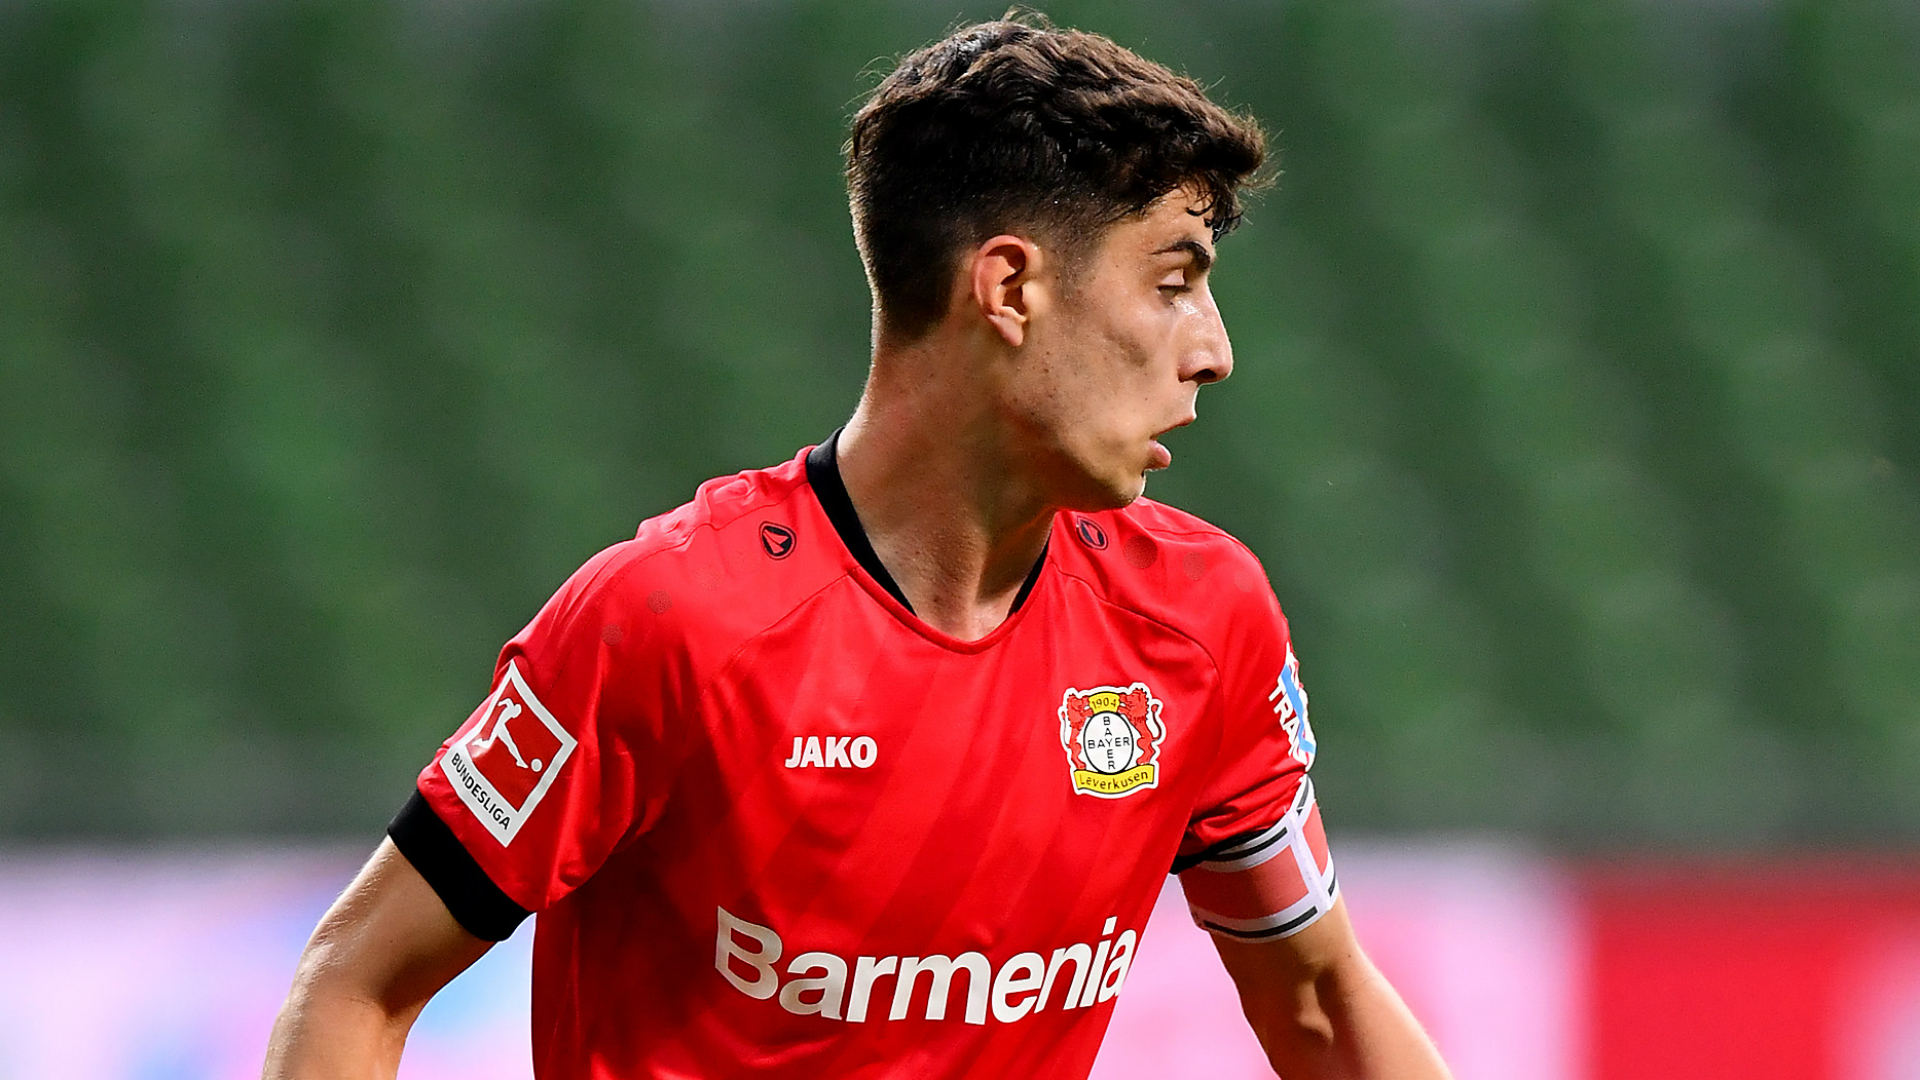 Chelsea target Havertz 'fighting' for Leverkusen and will face Rangers - Bosz